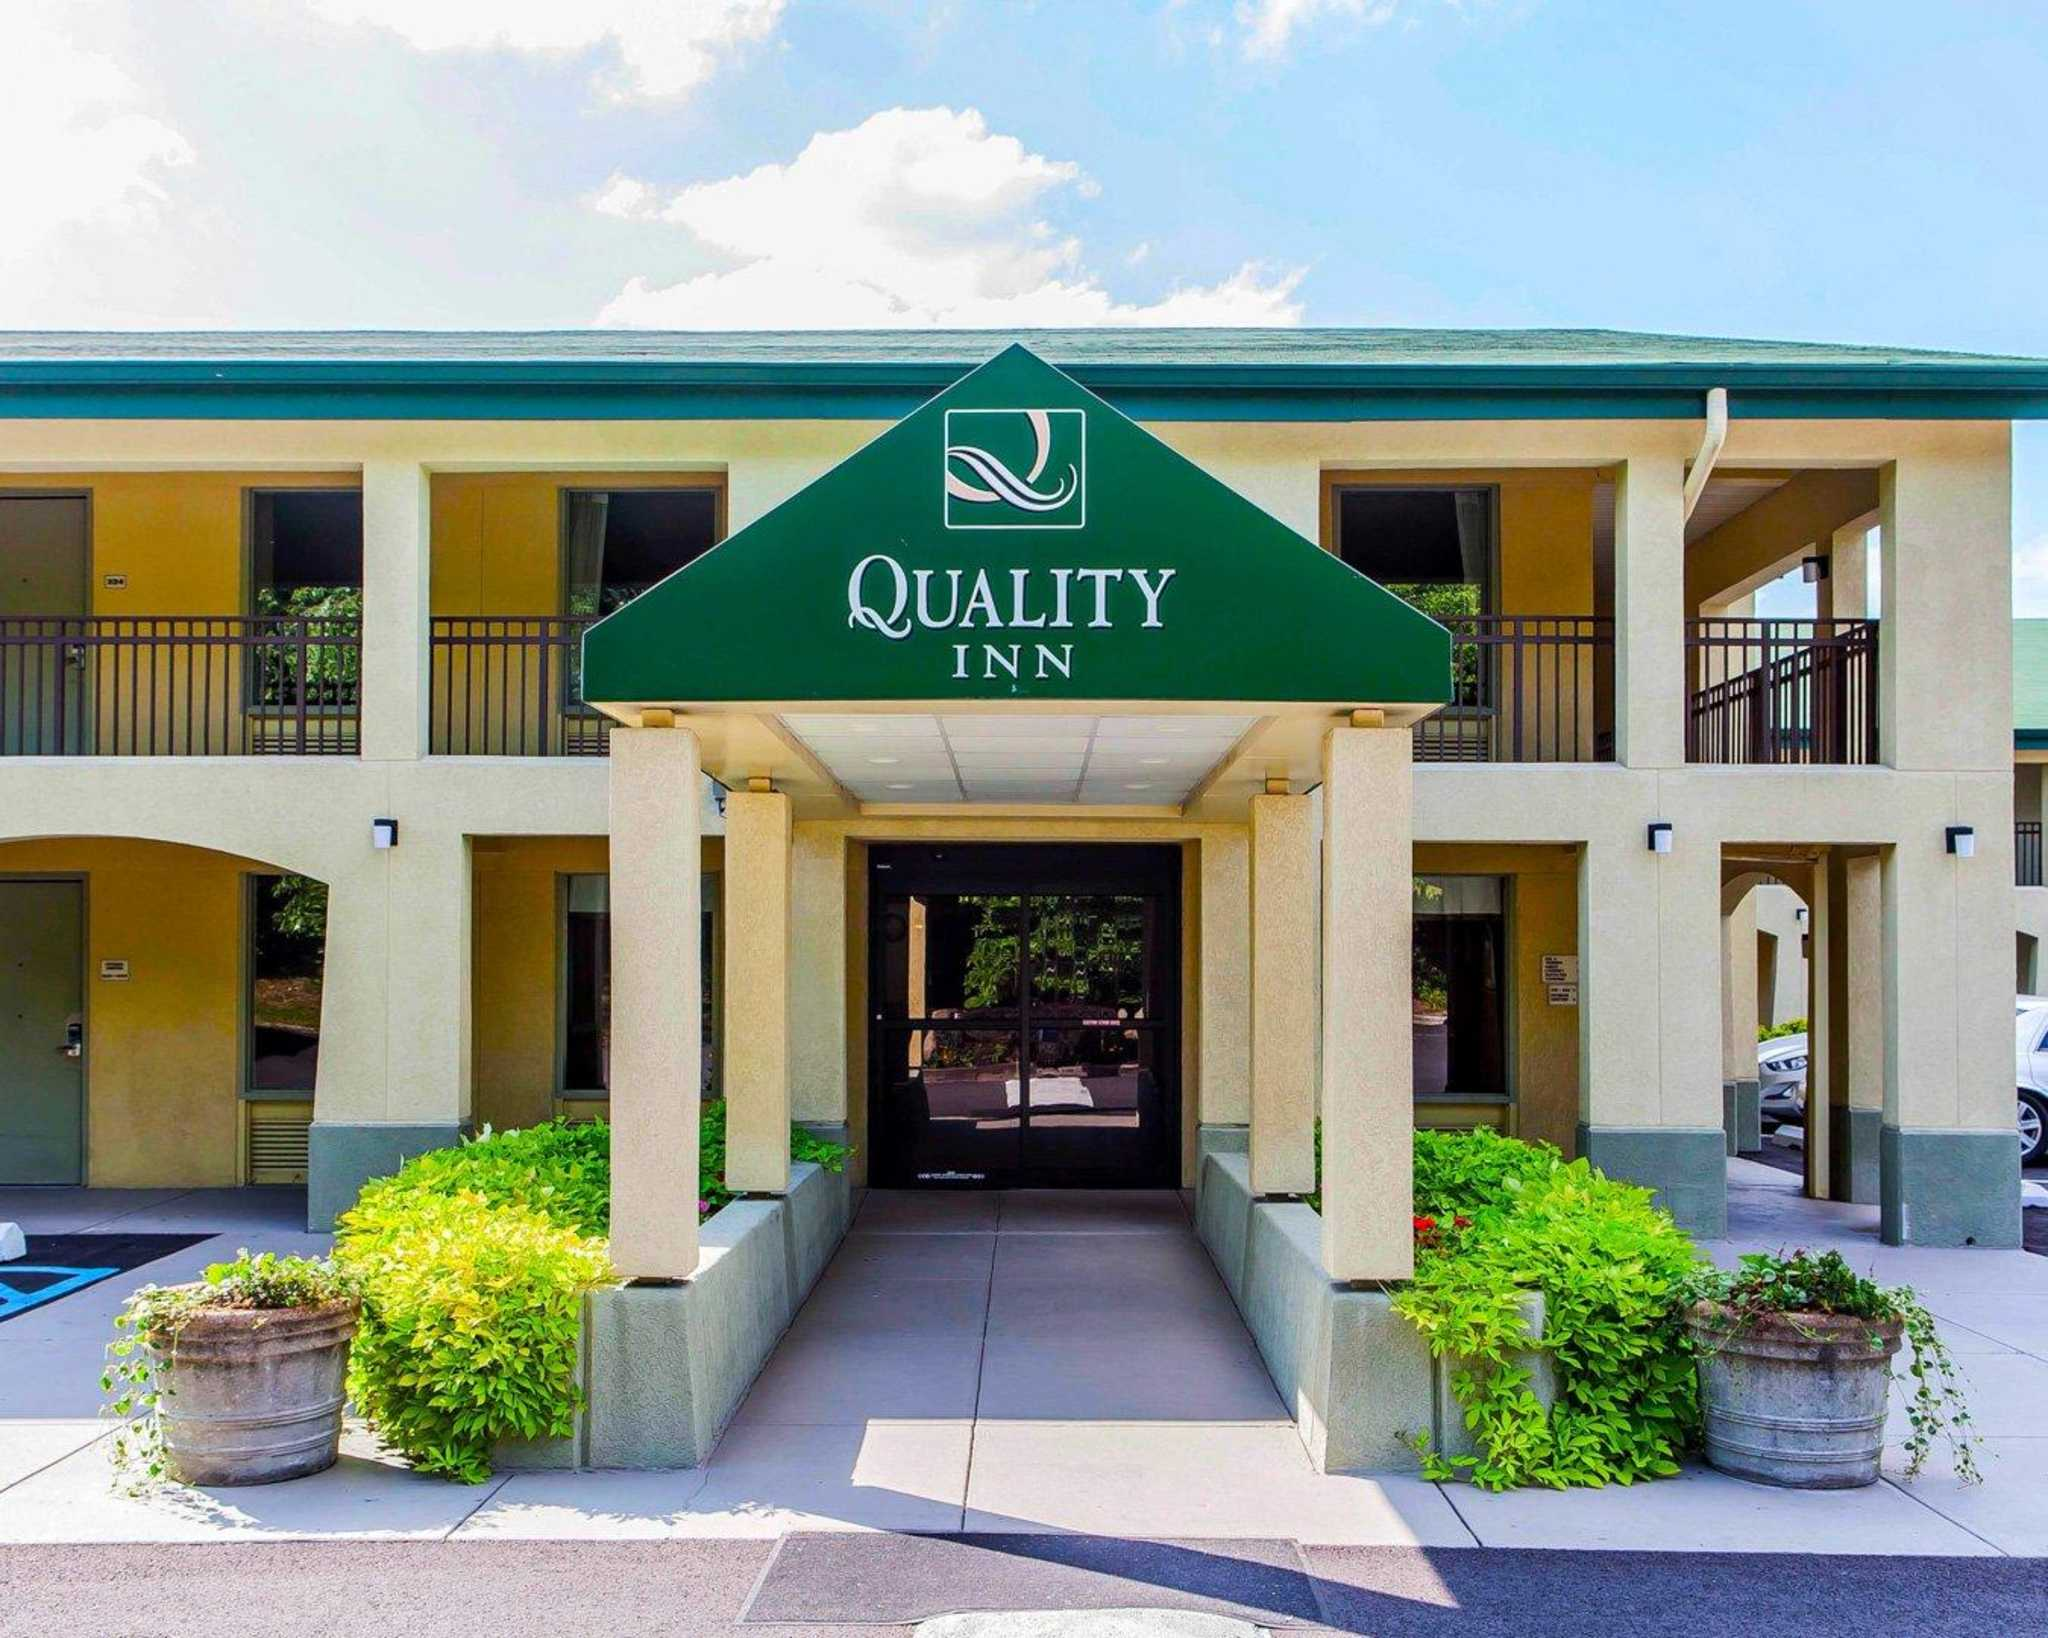 Quality Inn Coupons and Deals including: Up to 10% Off for State Employees and Government Travelers, Up to 10% Off for AAA CAA Members, 10% Off for Senior Citizens, Up to 20% Off Participating Hotels, 10% Off for Active Military, Veterans and Dependants, Get 10 Points Per $1 Plus Lowest Rate for Choice Privilege Members.